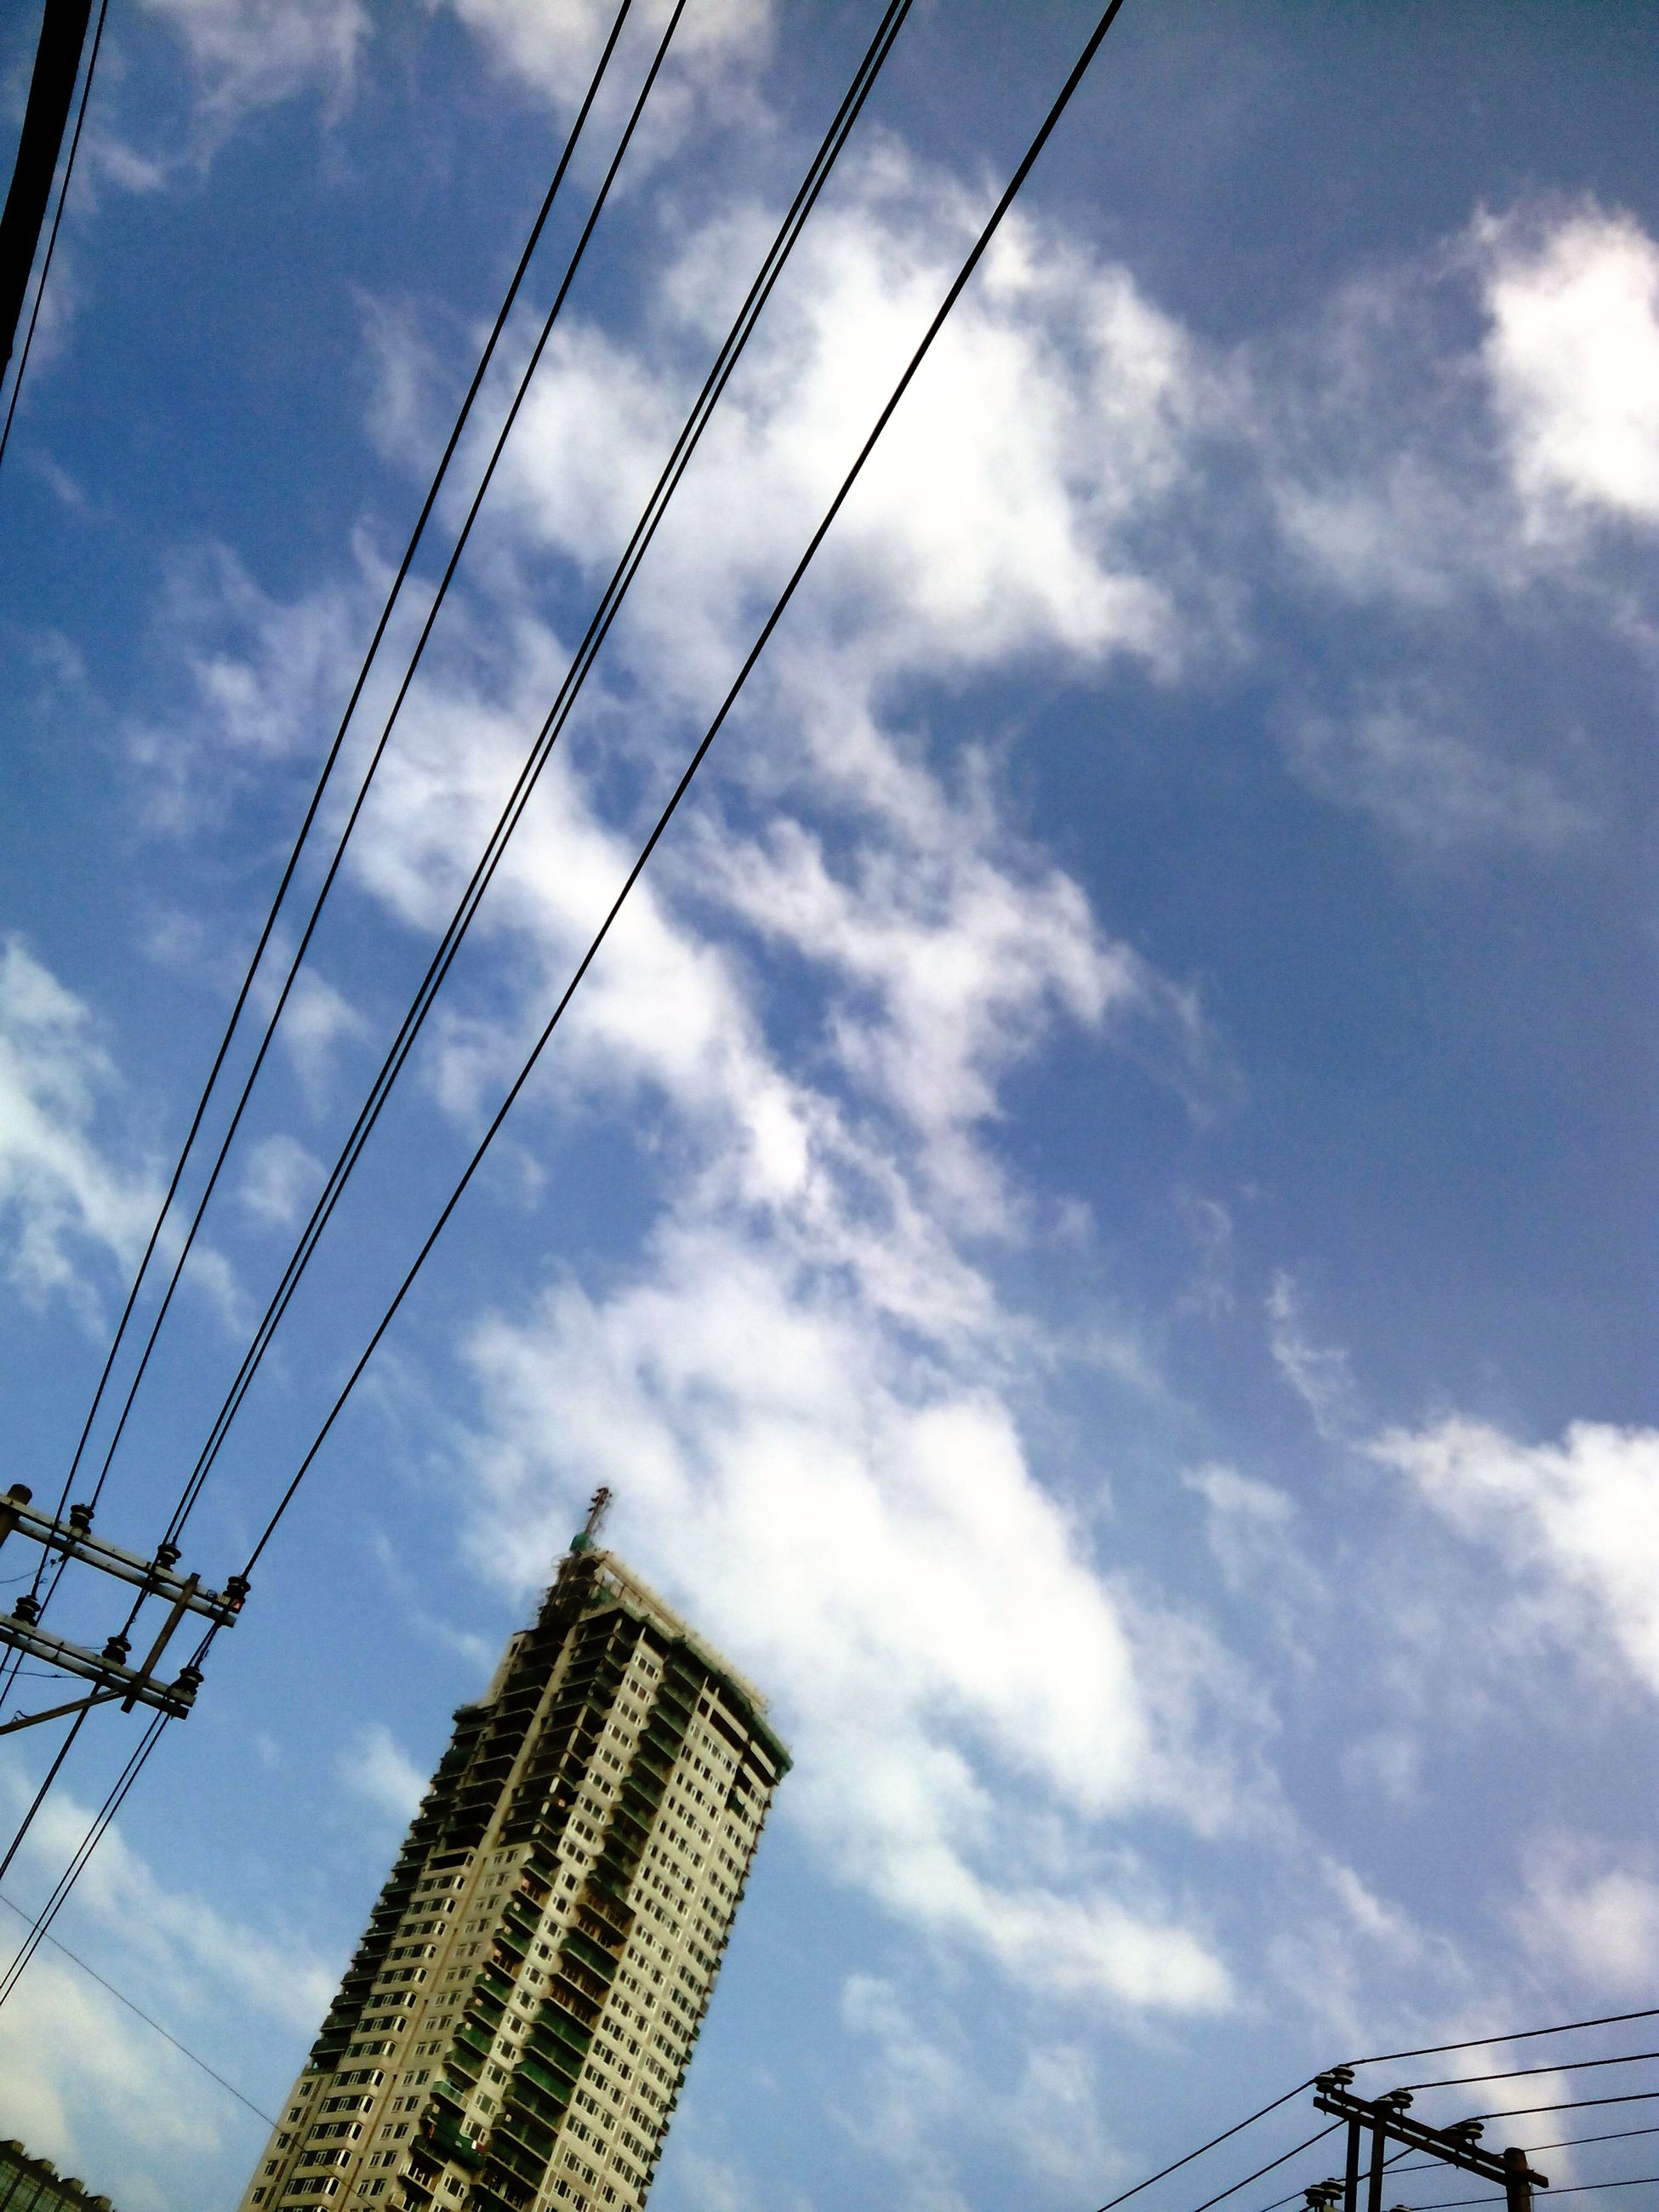 low angle view, power line, sky, cable, electricity pylon, electricity, connection, built structure, architecture, power supply, cloud - sky, building exterior, fuel and power generation, technology, cloudy, cloud, tall - high, outdoors, no people, silhouette